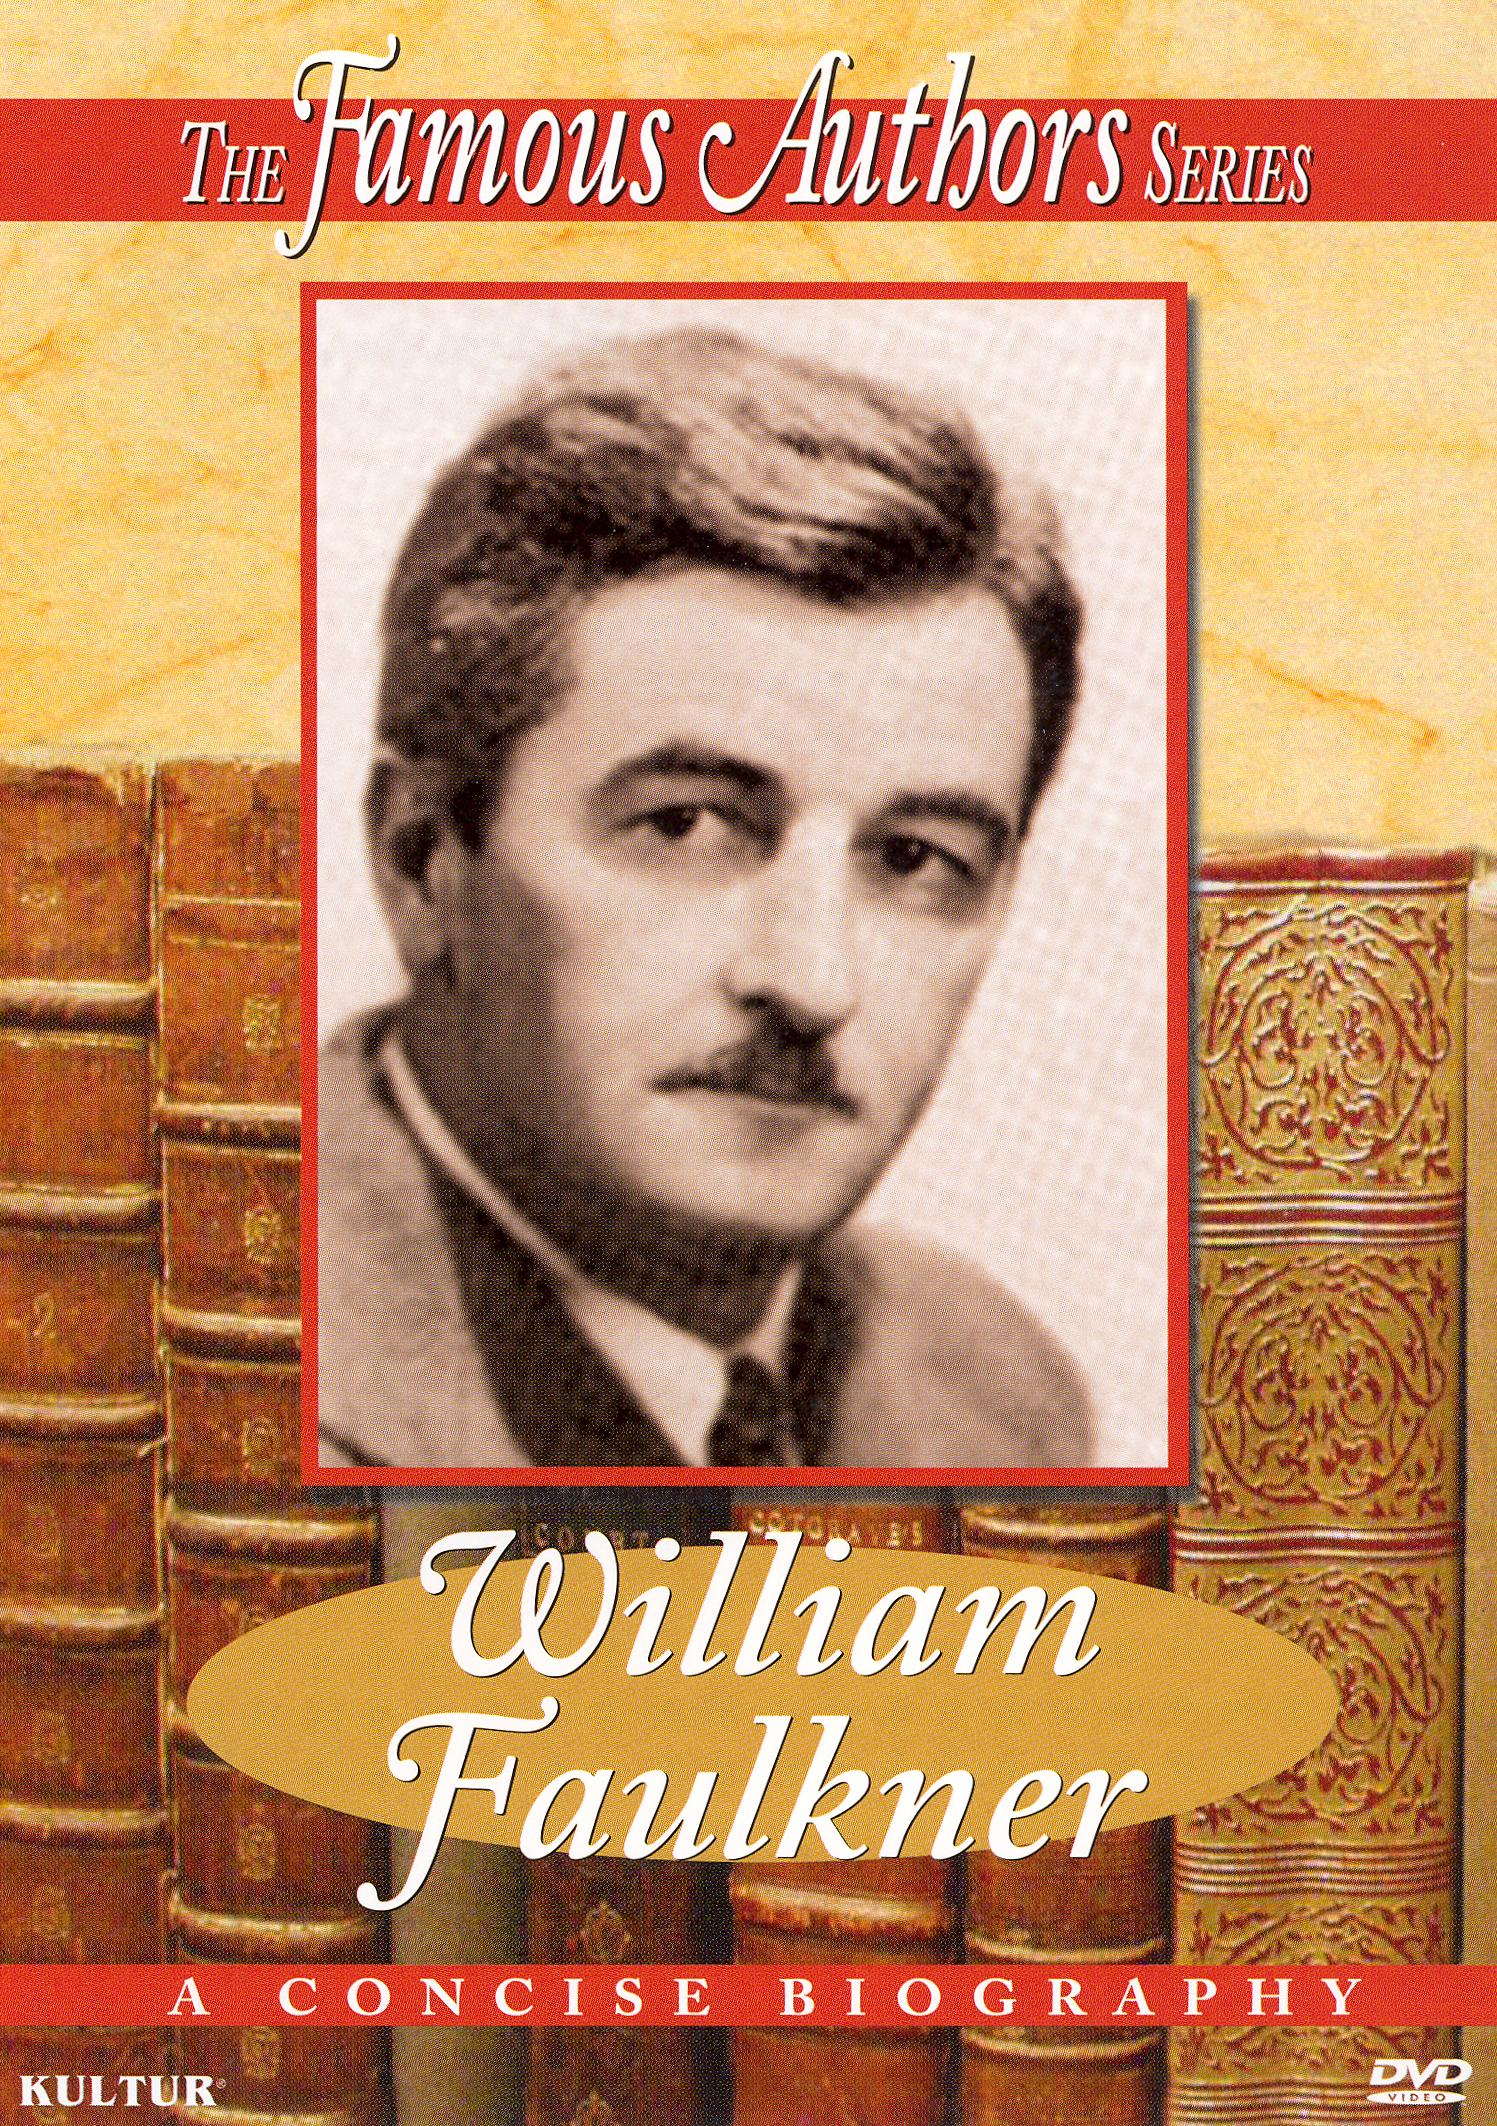 Famous Authors: William Faulkner (1996)